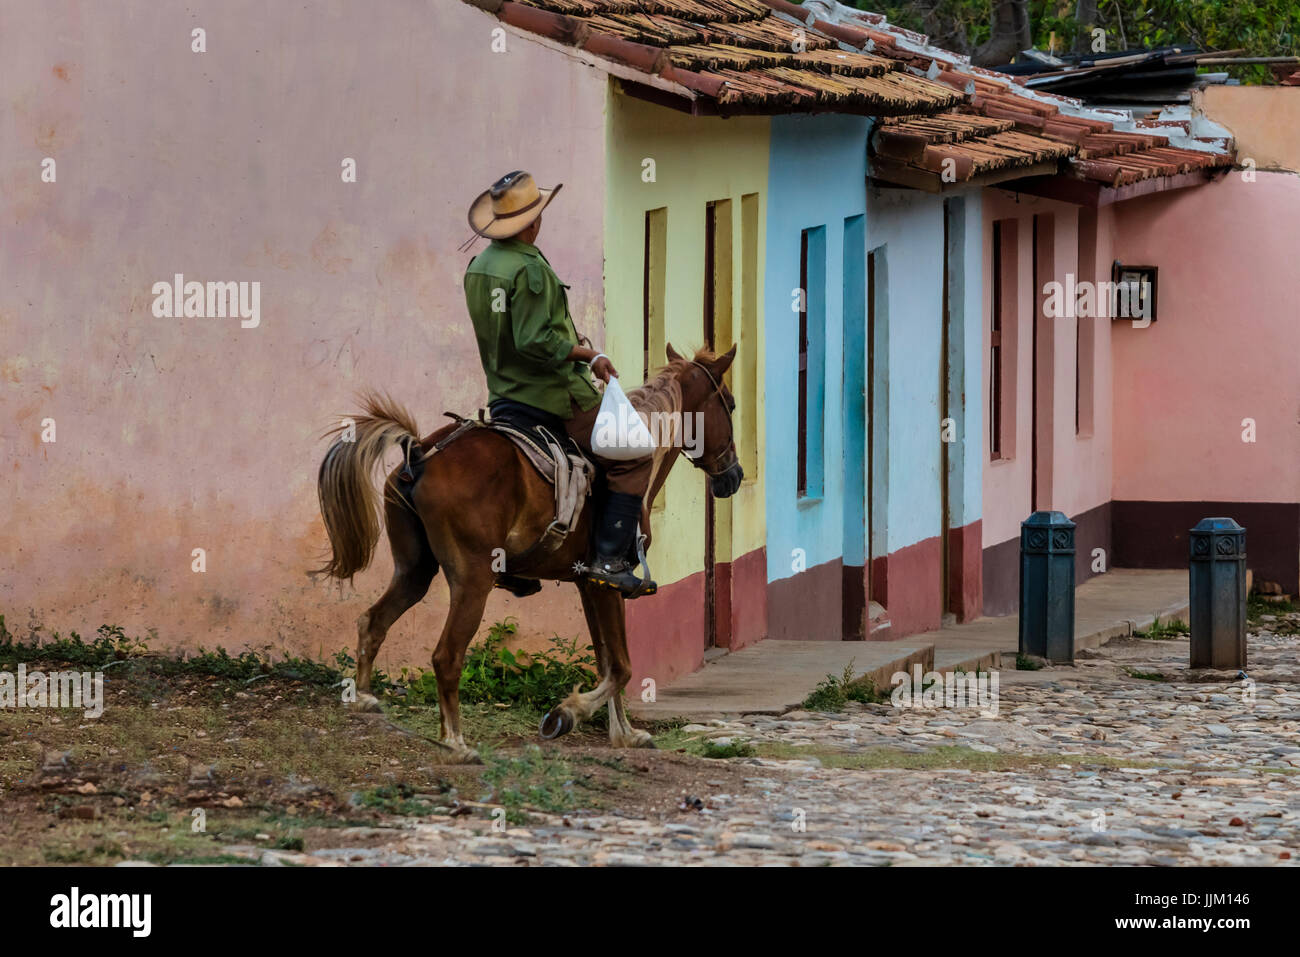 Horses and cowboys are a common site on the cobblestone streets of TRINIDAD, CUBA - Stock Image